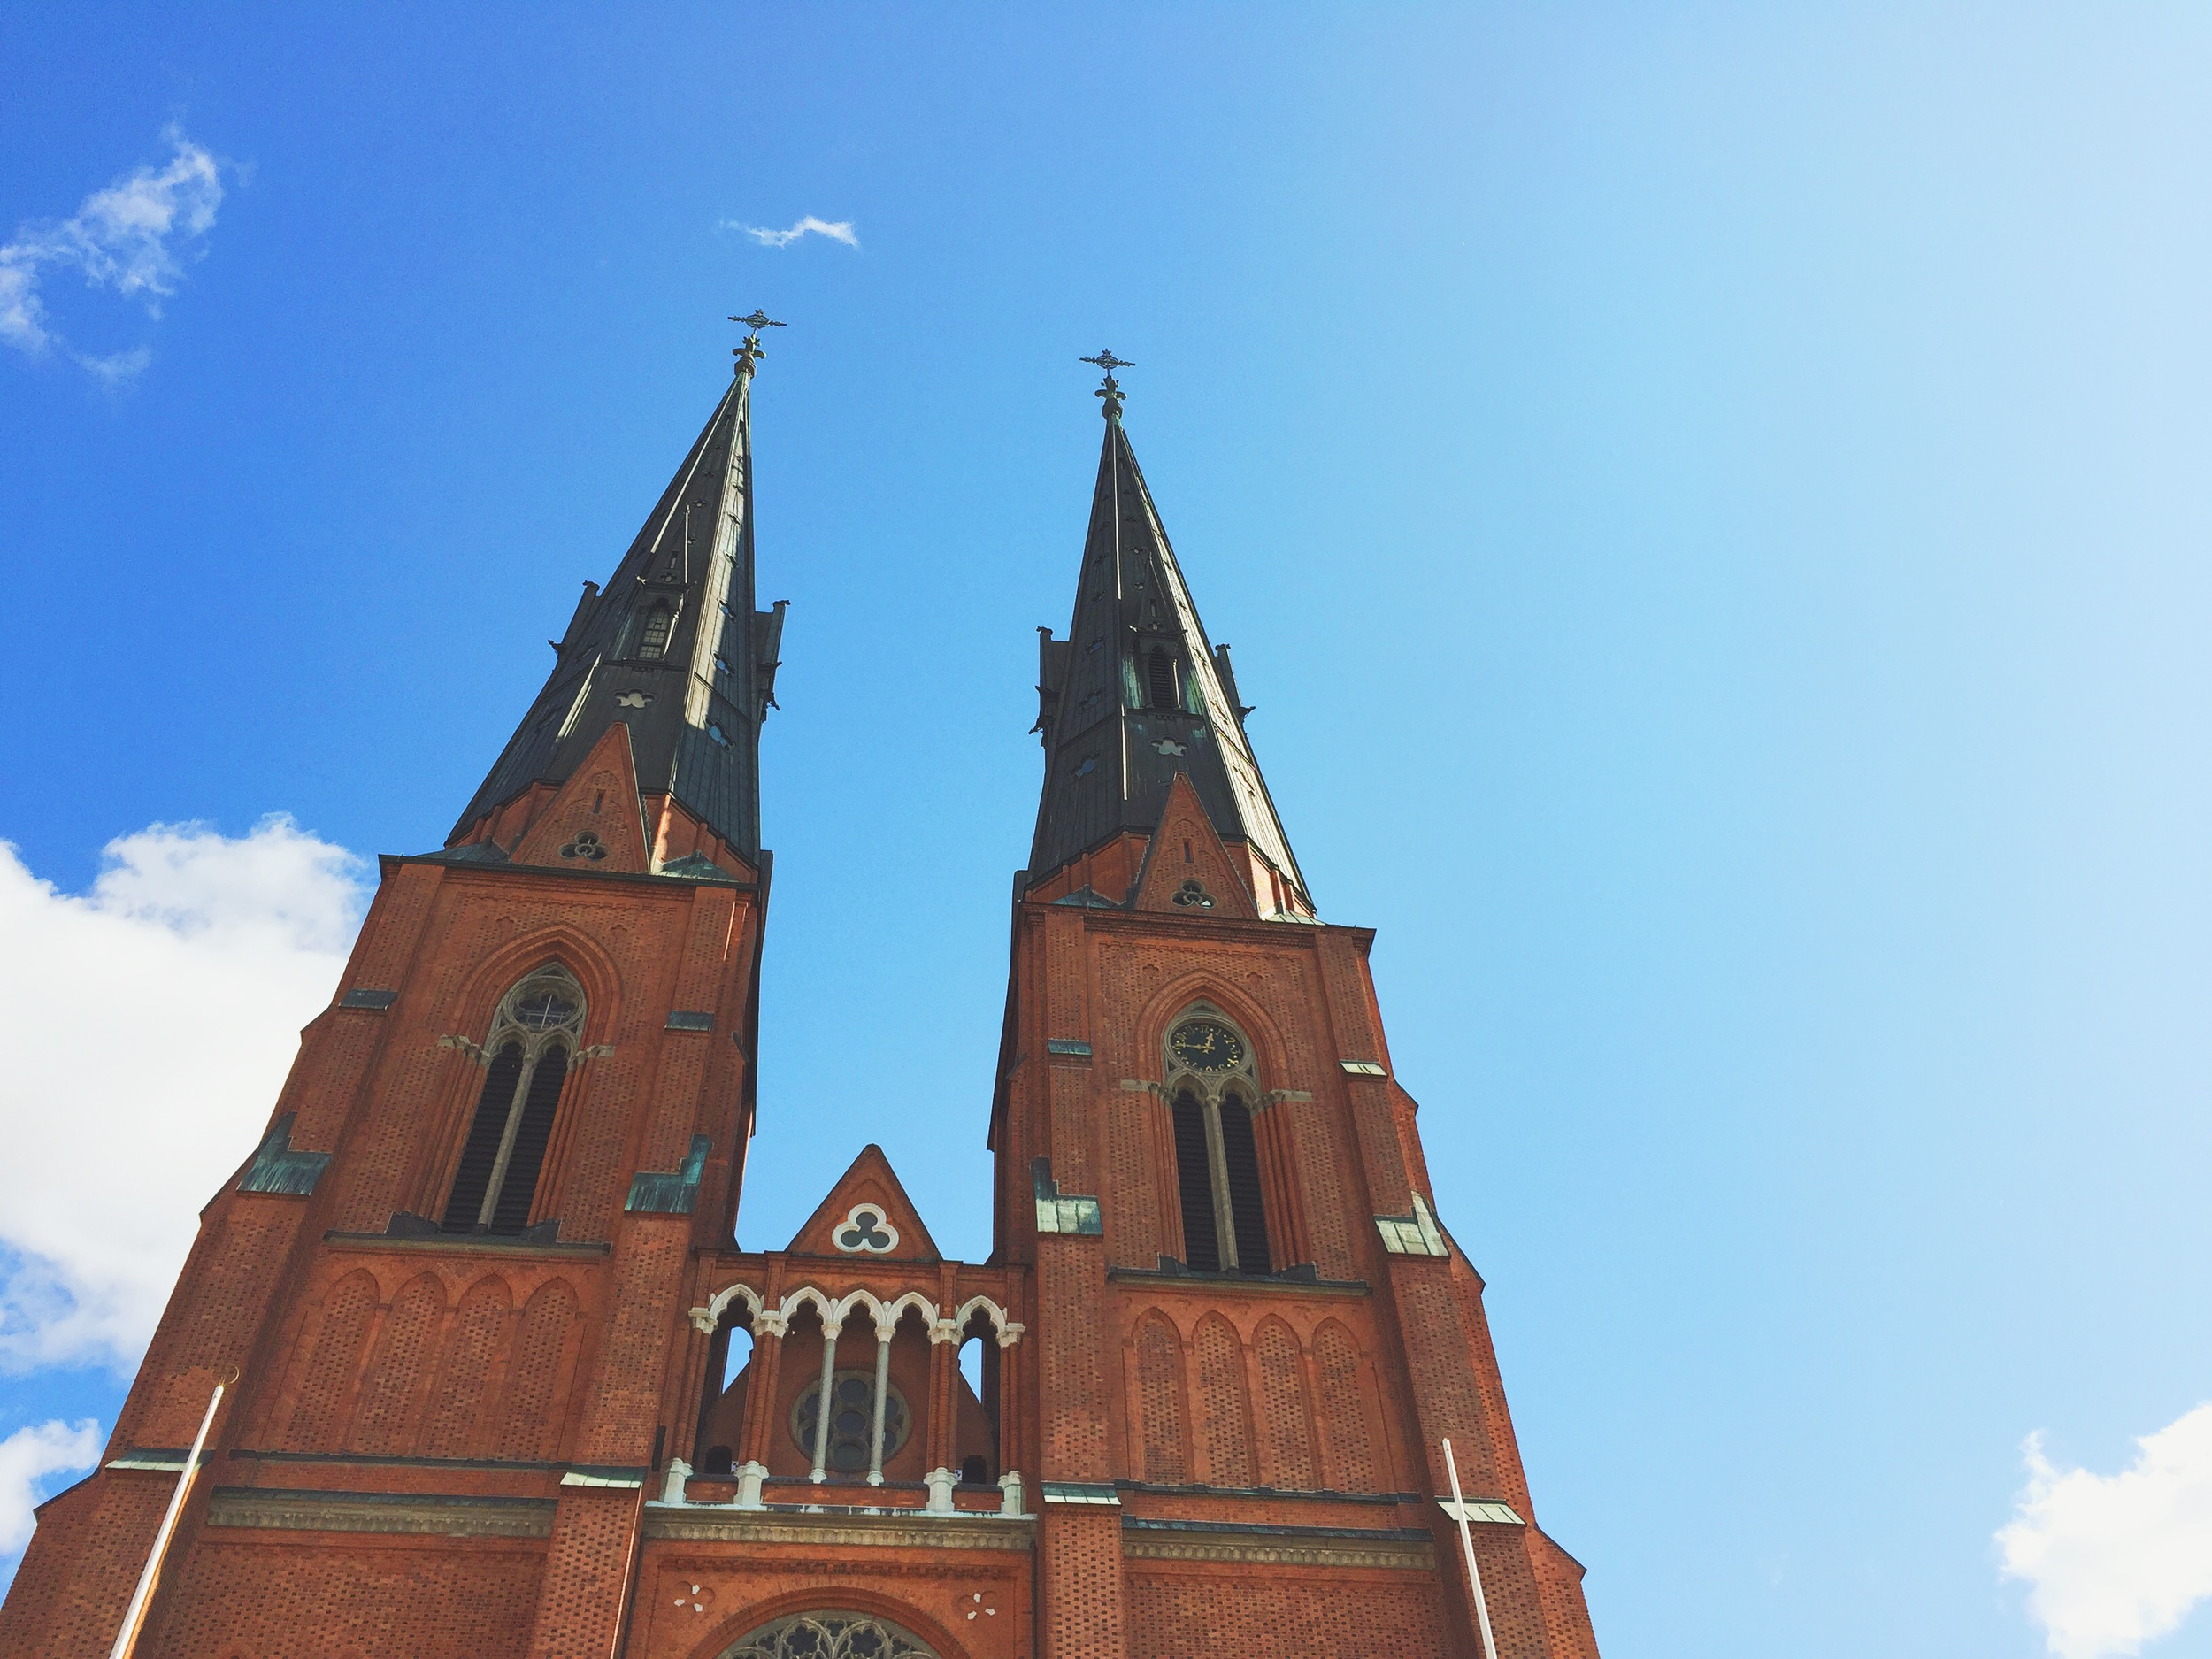 The Uppsala Cathedral, which is Scandinavia's largest and tallest church.